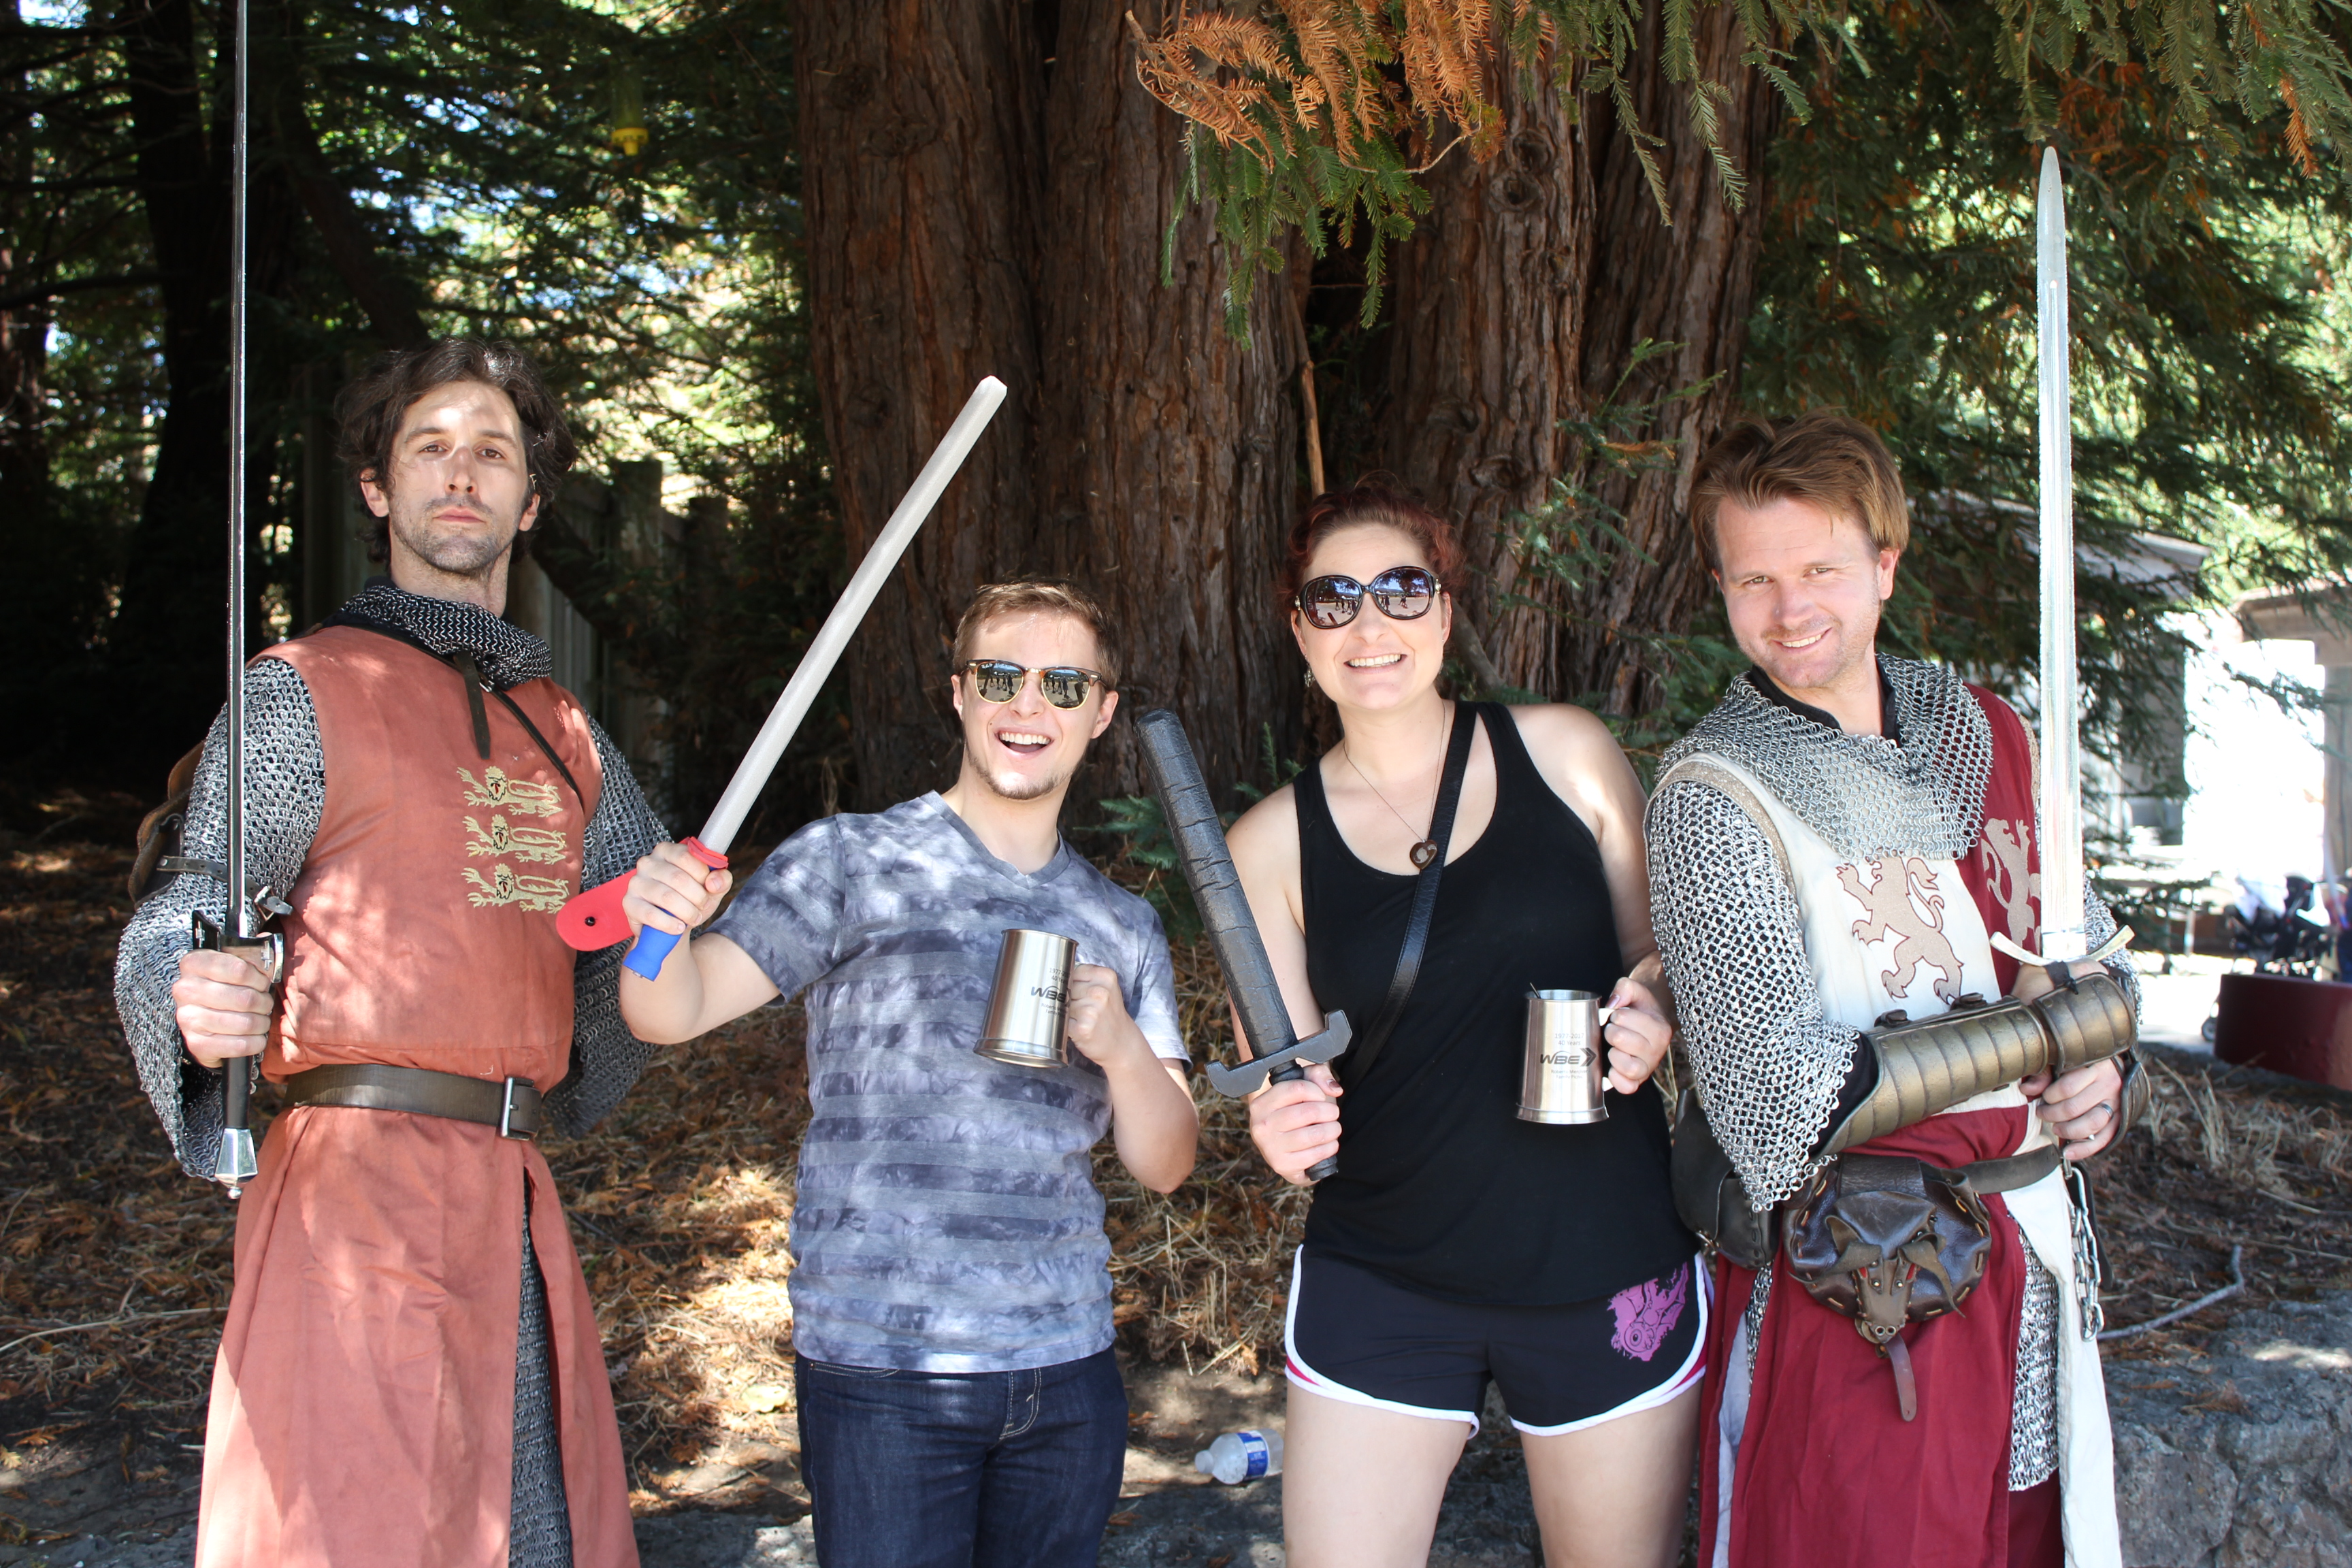 Our annual company picnic was Rennaisance themed this year!